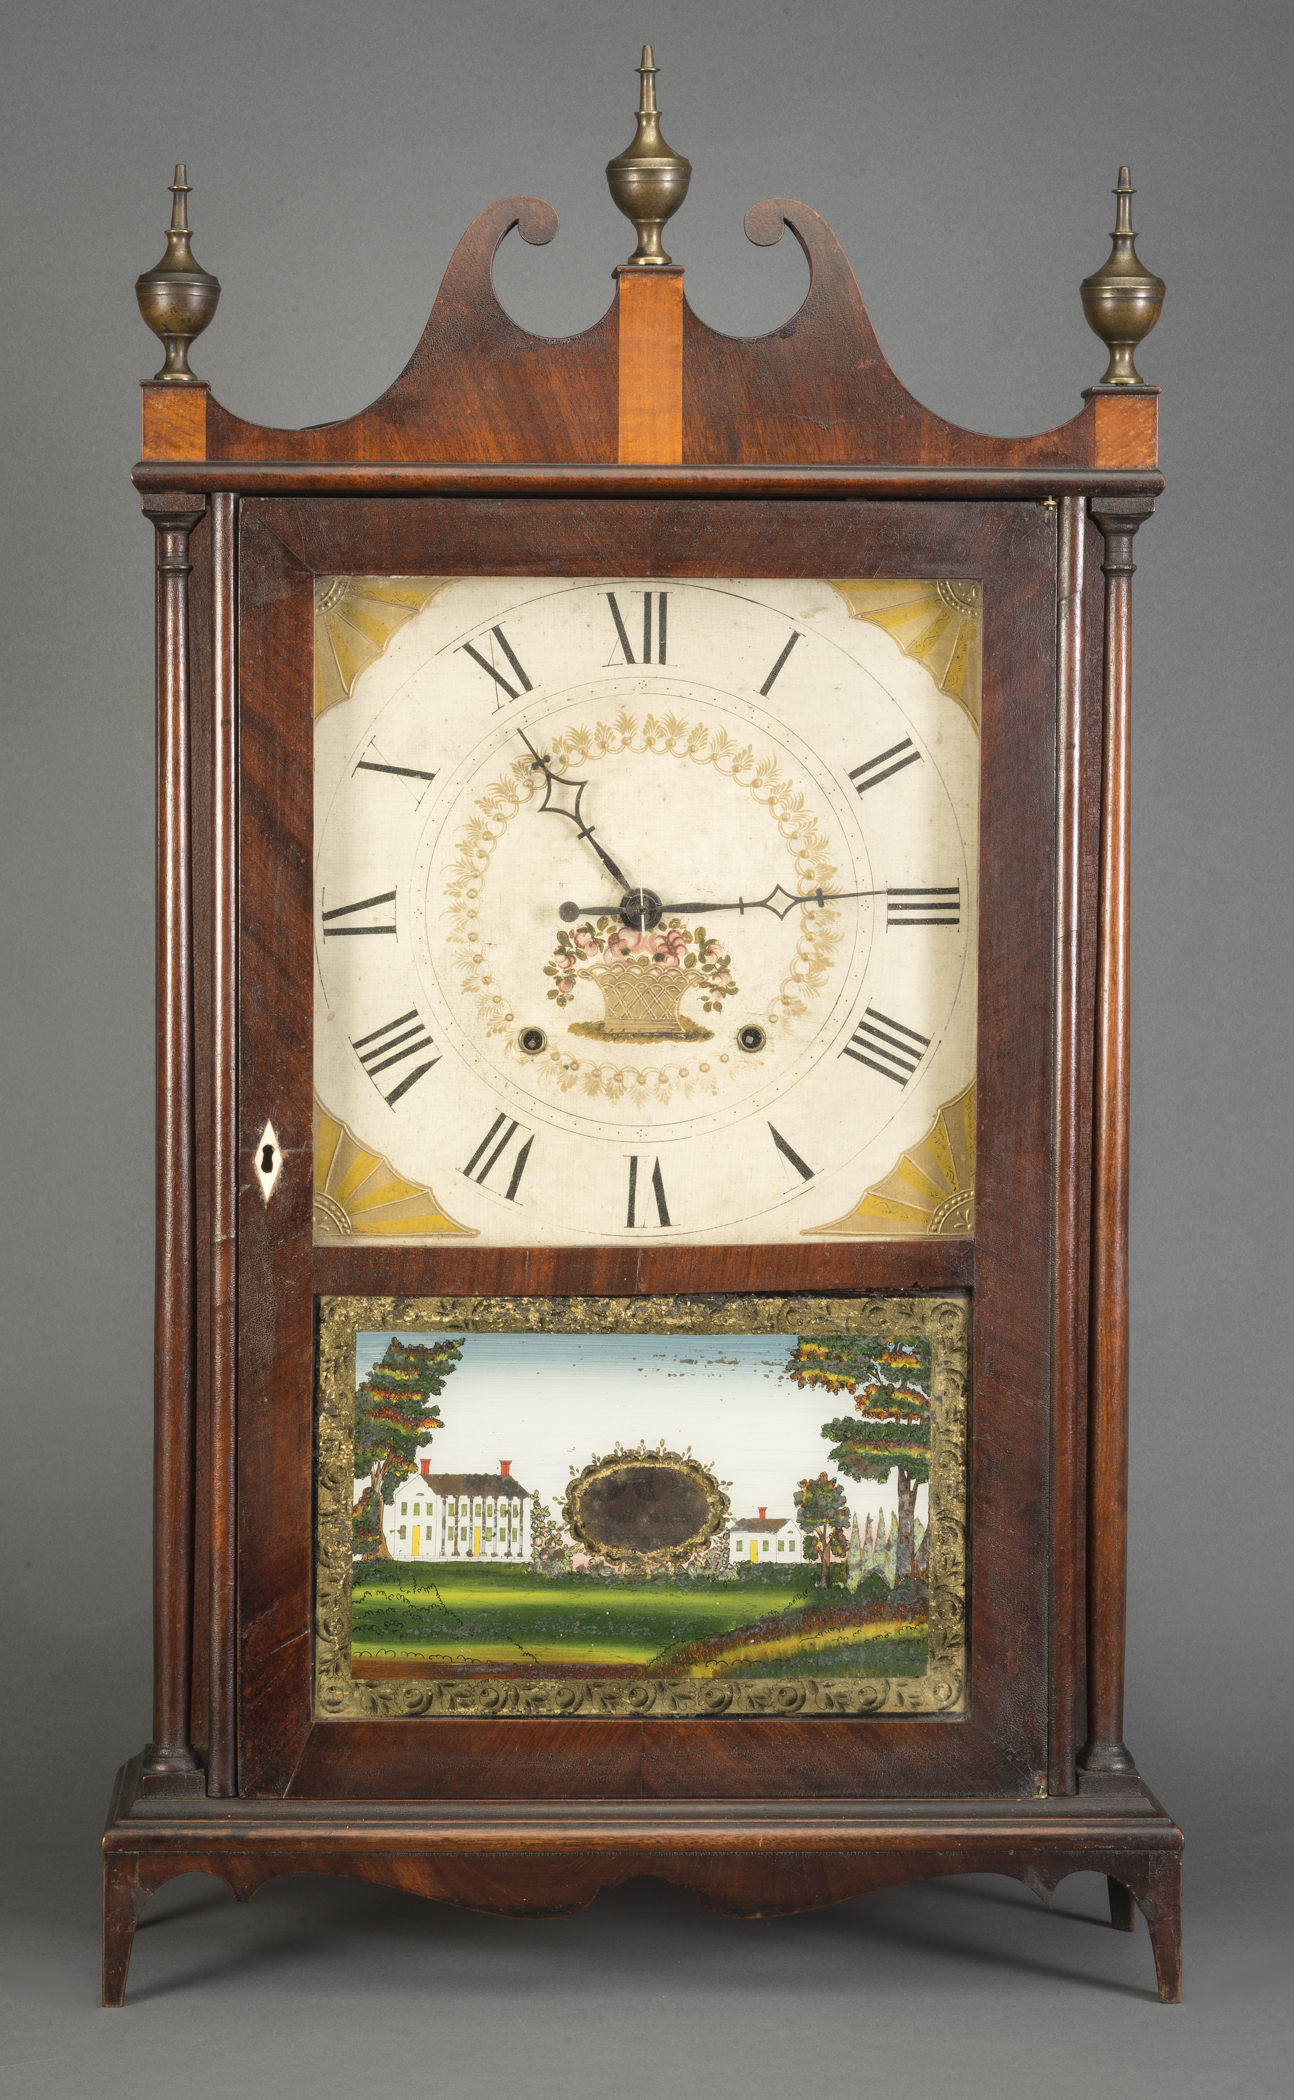 Clock - Mantel clock